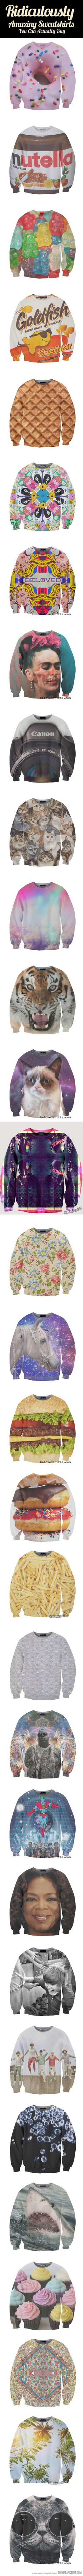 Ridiculously Amazing Sweatshirts… I want them all